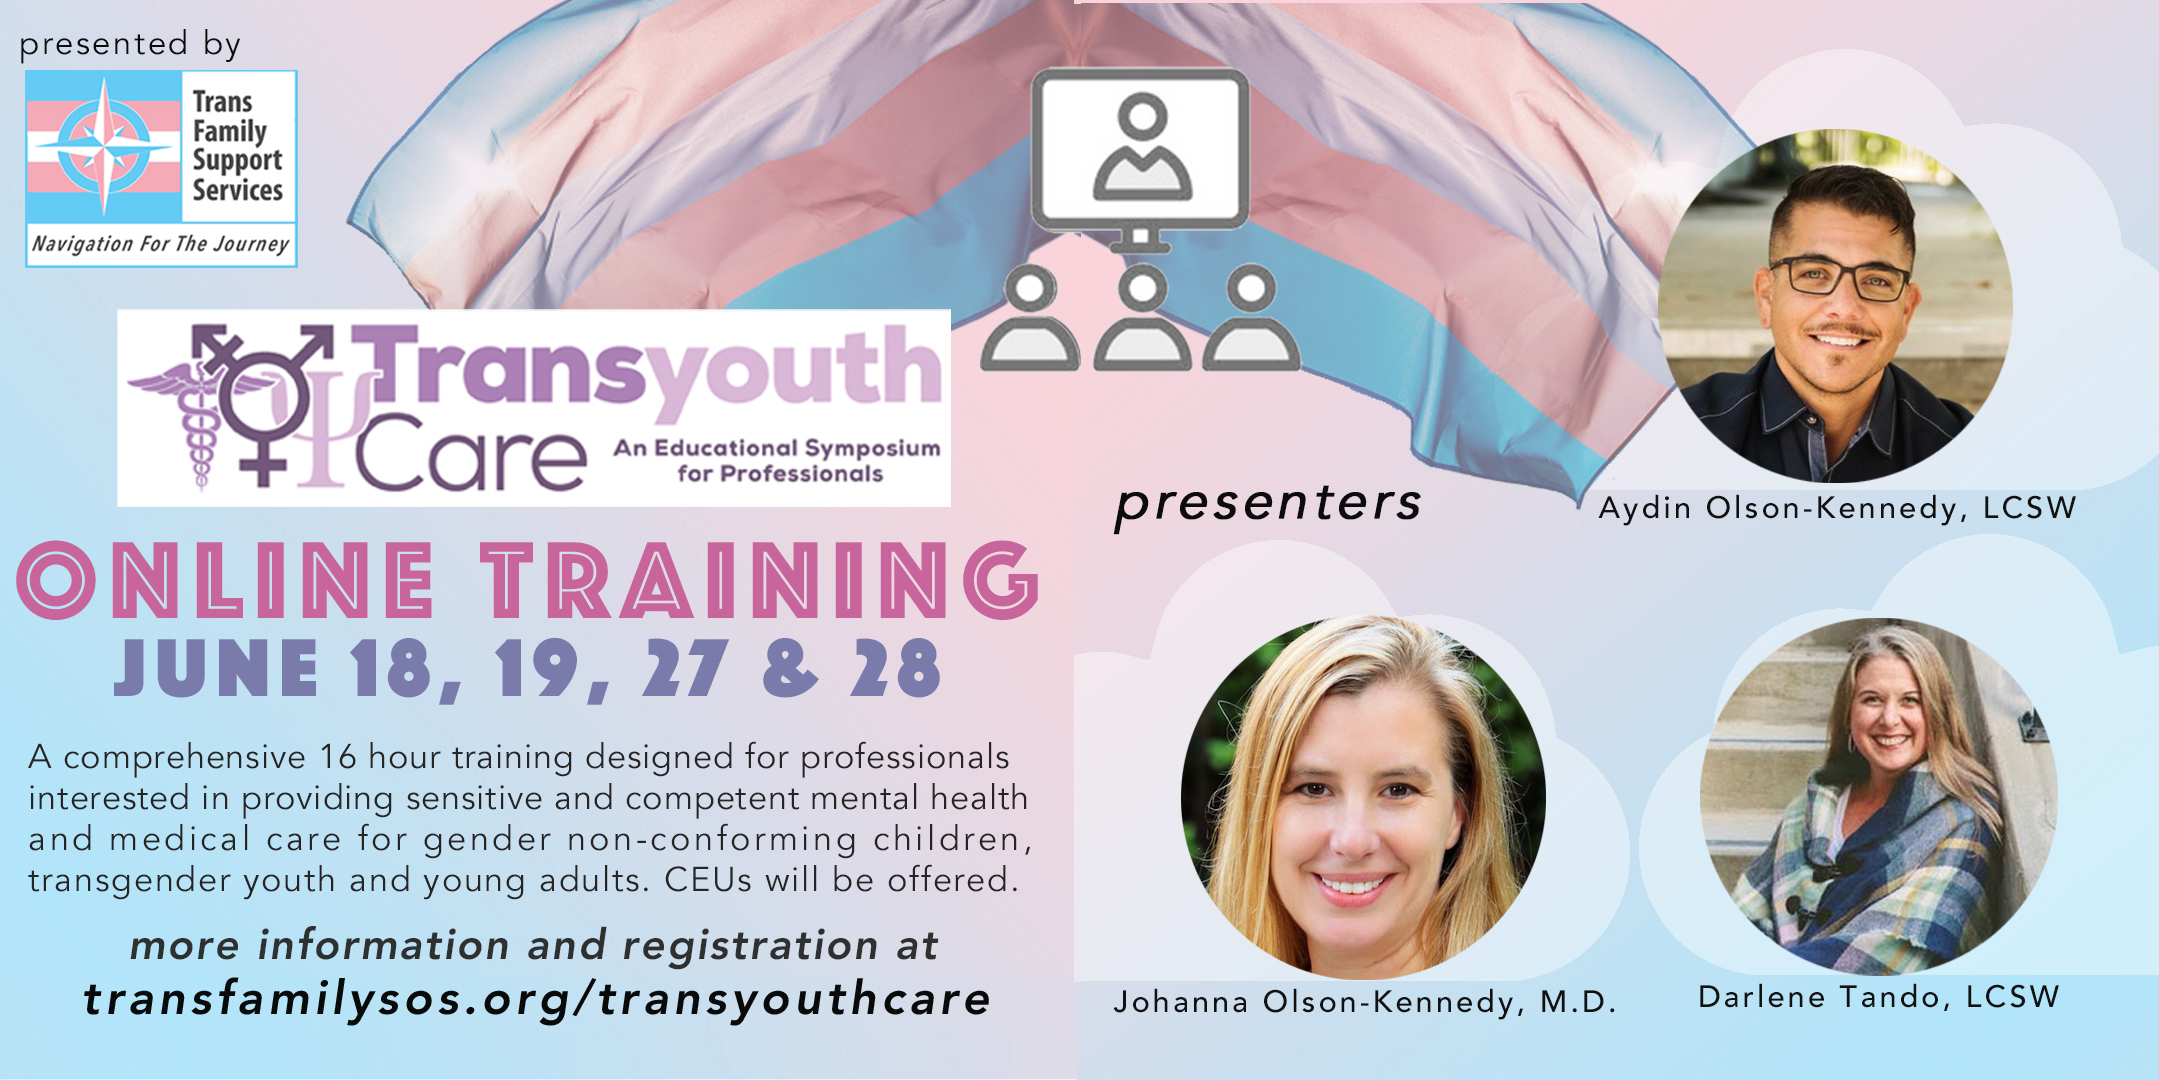 An event flier for TransYouthCare. An educational symposium for Professionals. Online Training June 18th, 19th and June 27th, 28th